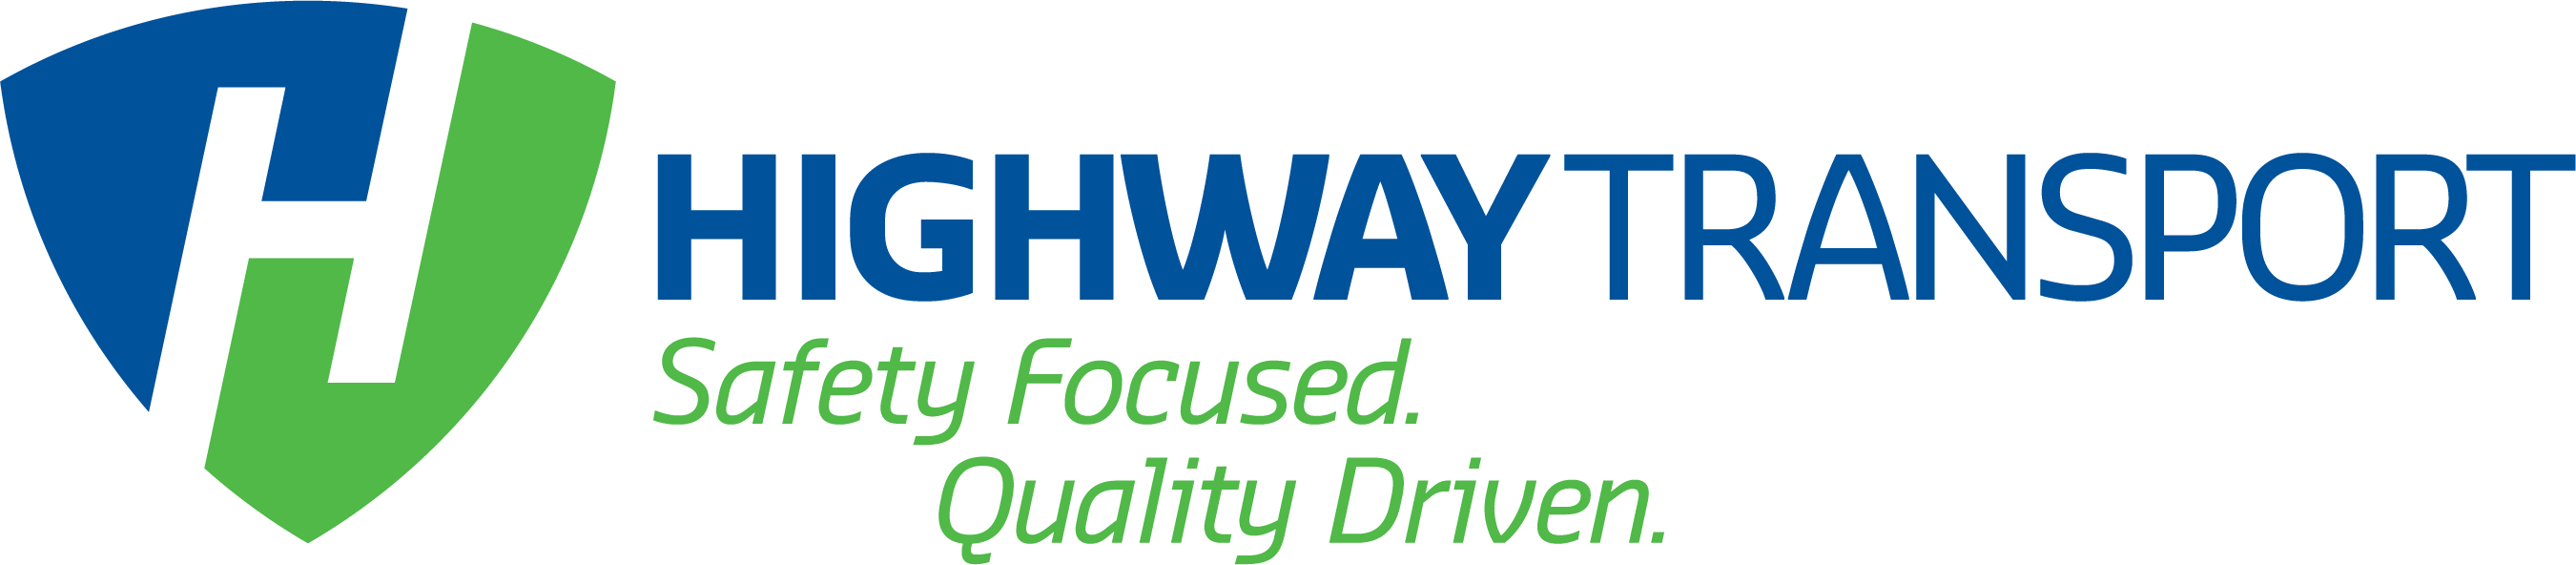 Highway Transport, Highway Transport celebrates 70 years, Highway Transport's 70th Anniversary